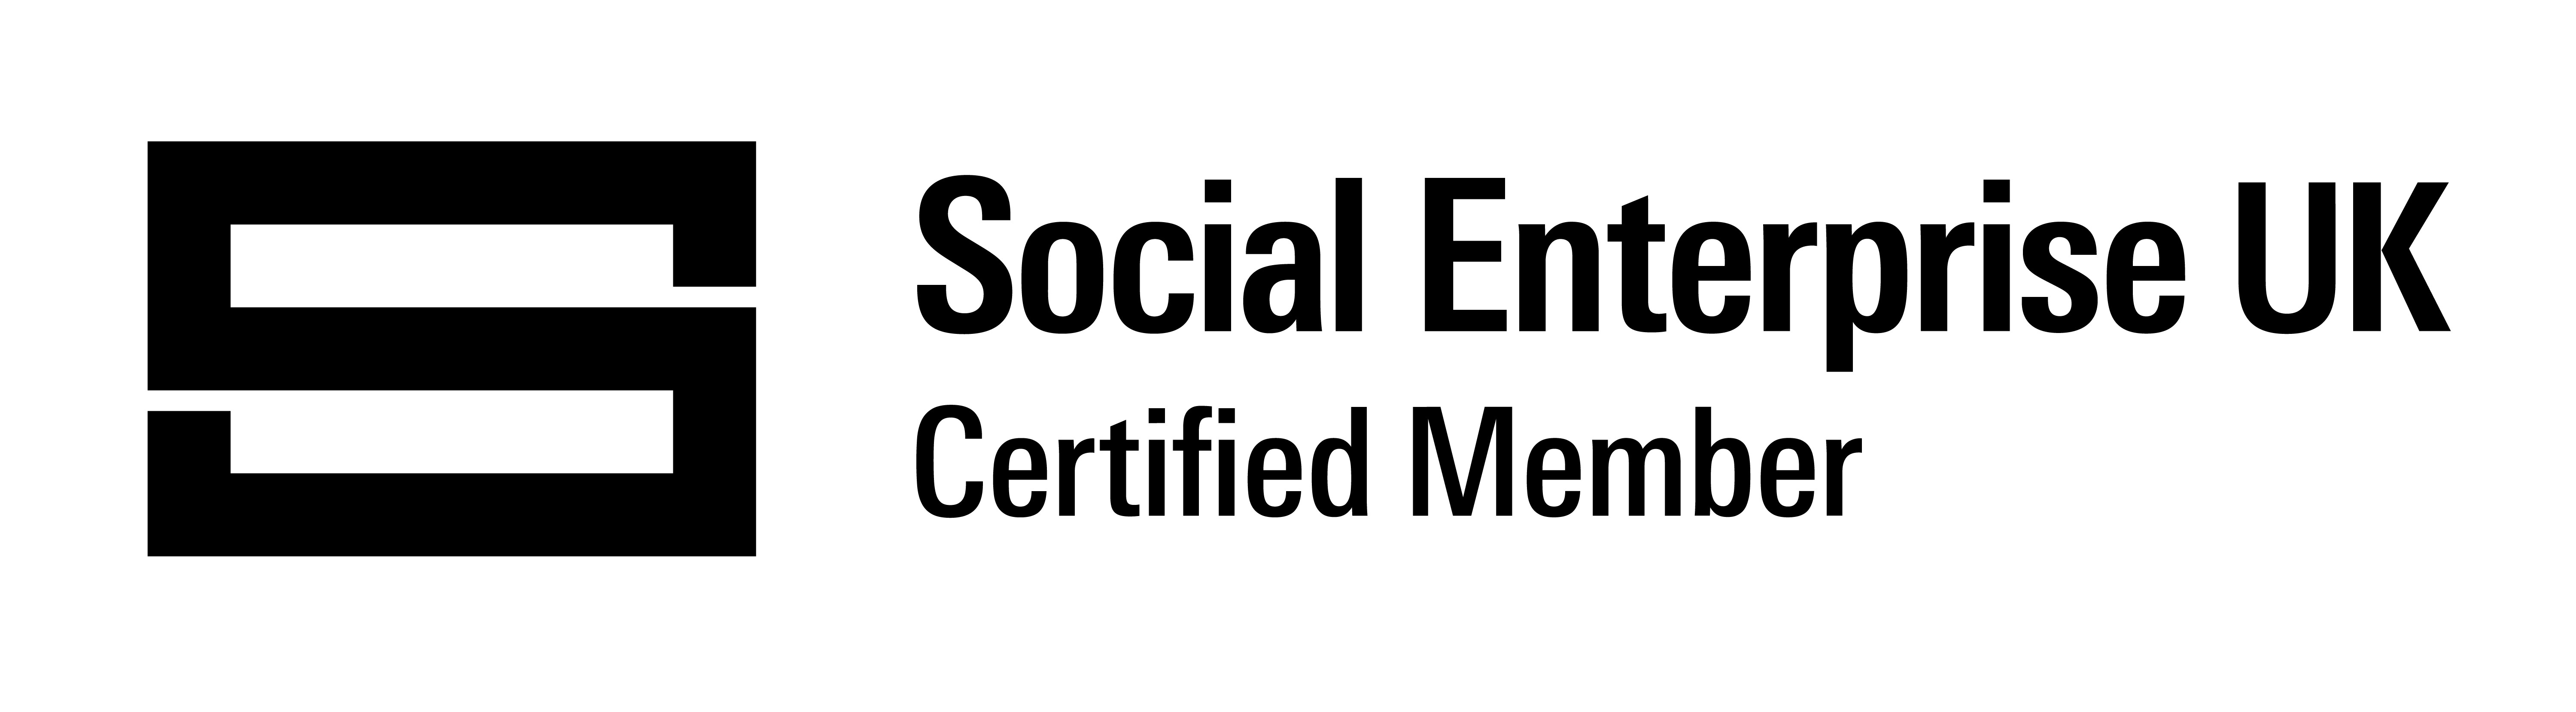 Certified Social Enterprise